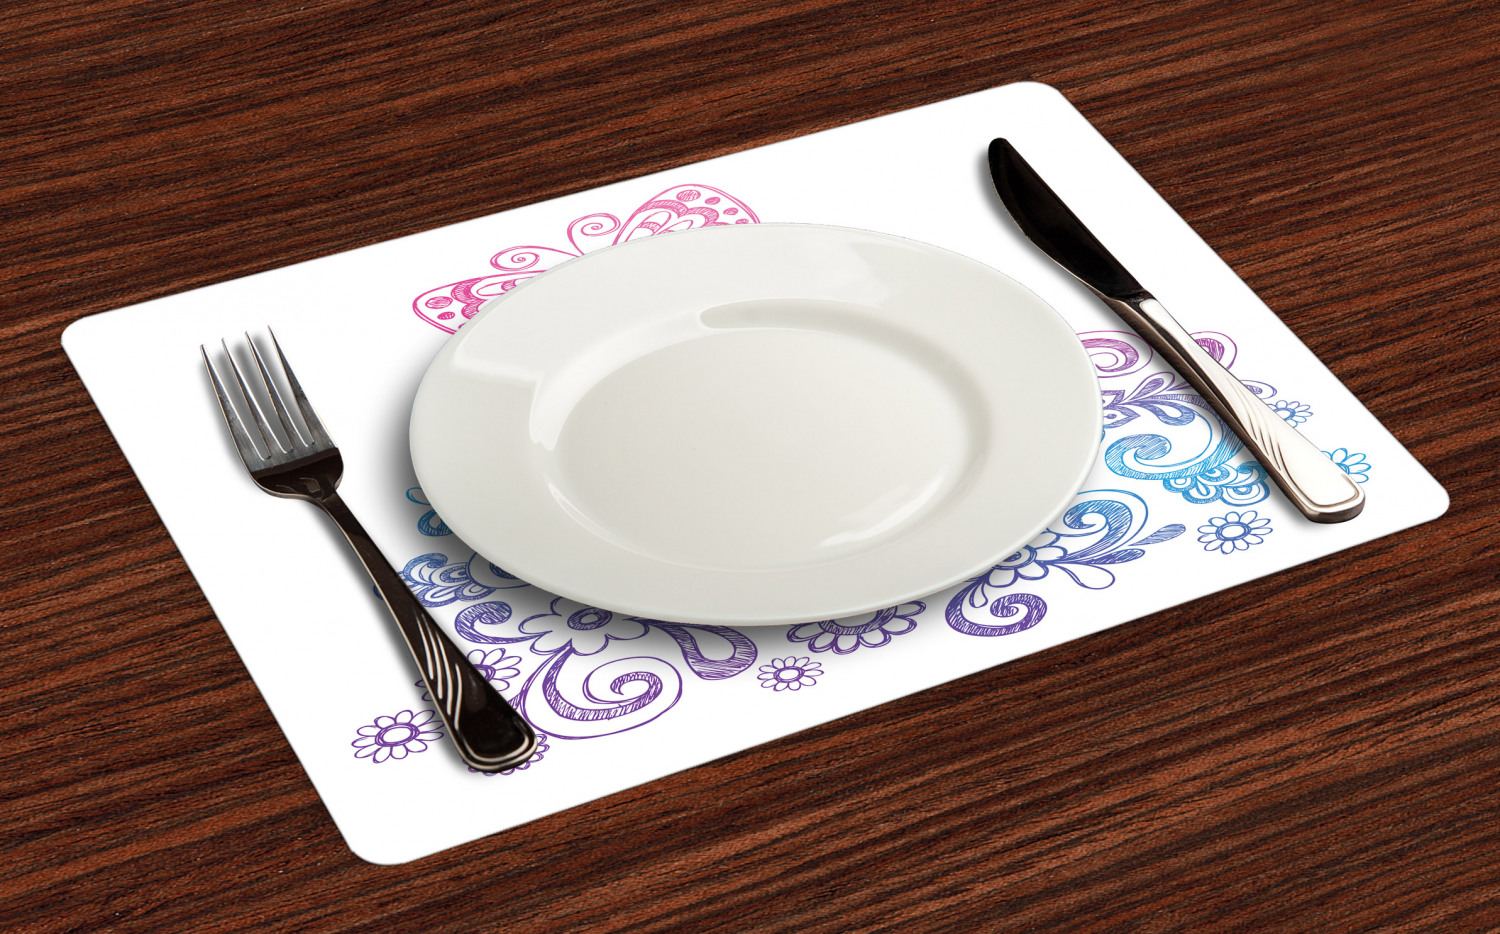 Ambesonne-Fabric-Place-Mats-Set-of-4-Placemats-for-Dining-Room-and-Kitchen-Table thumbnail 17